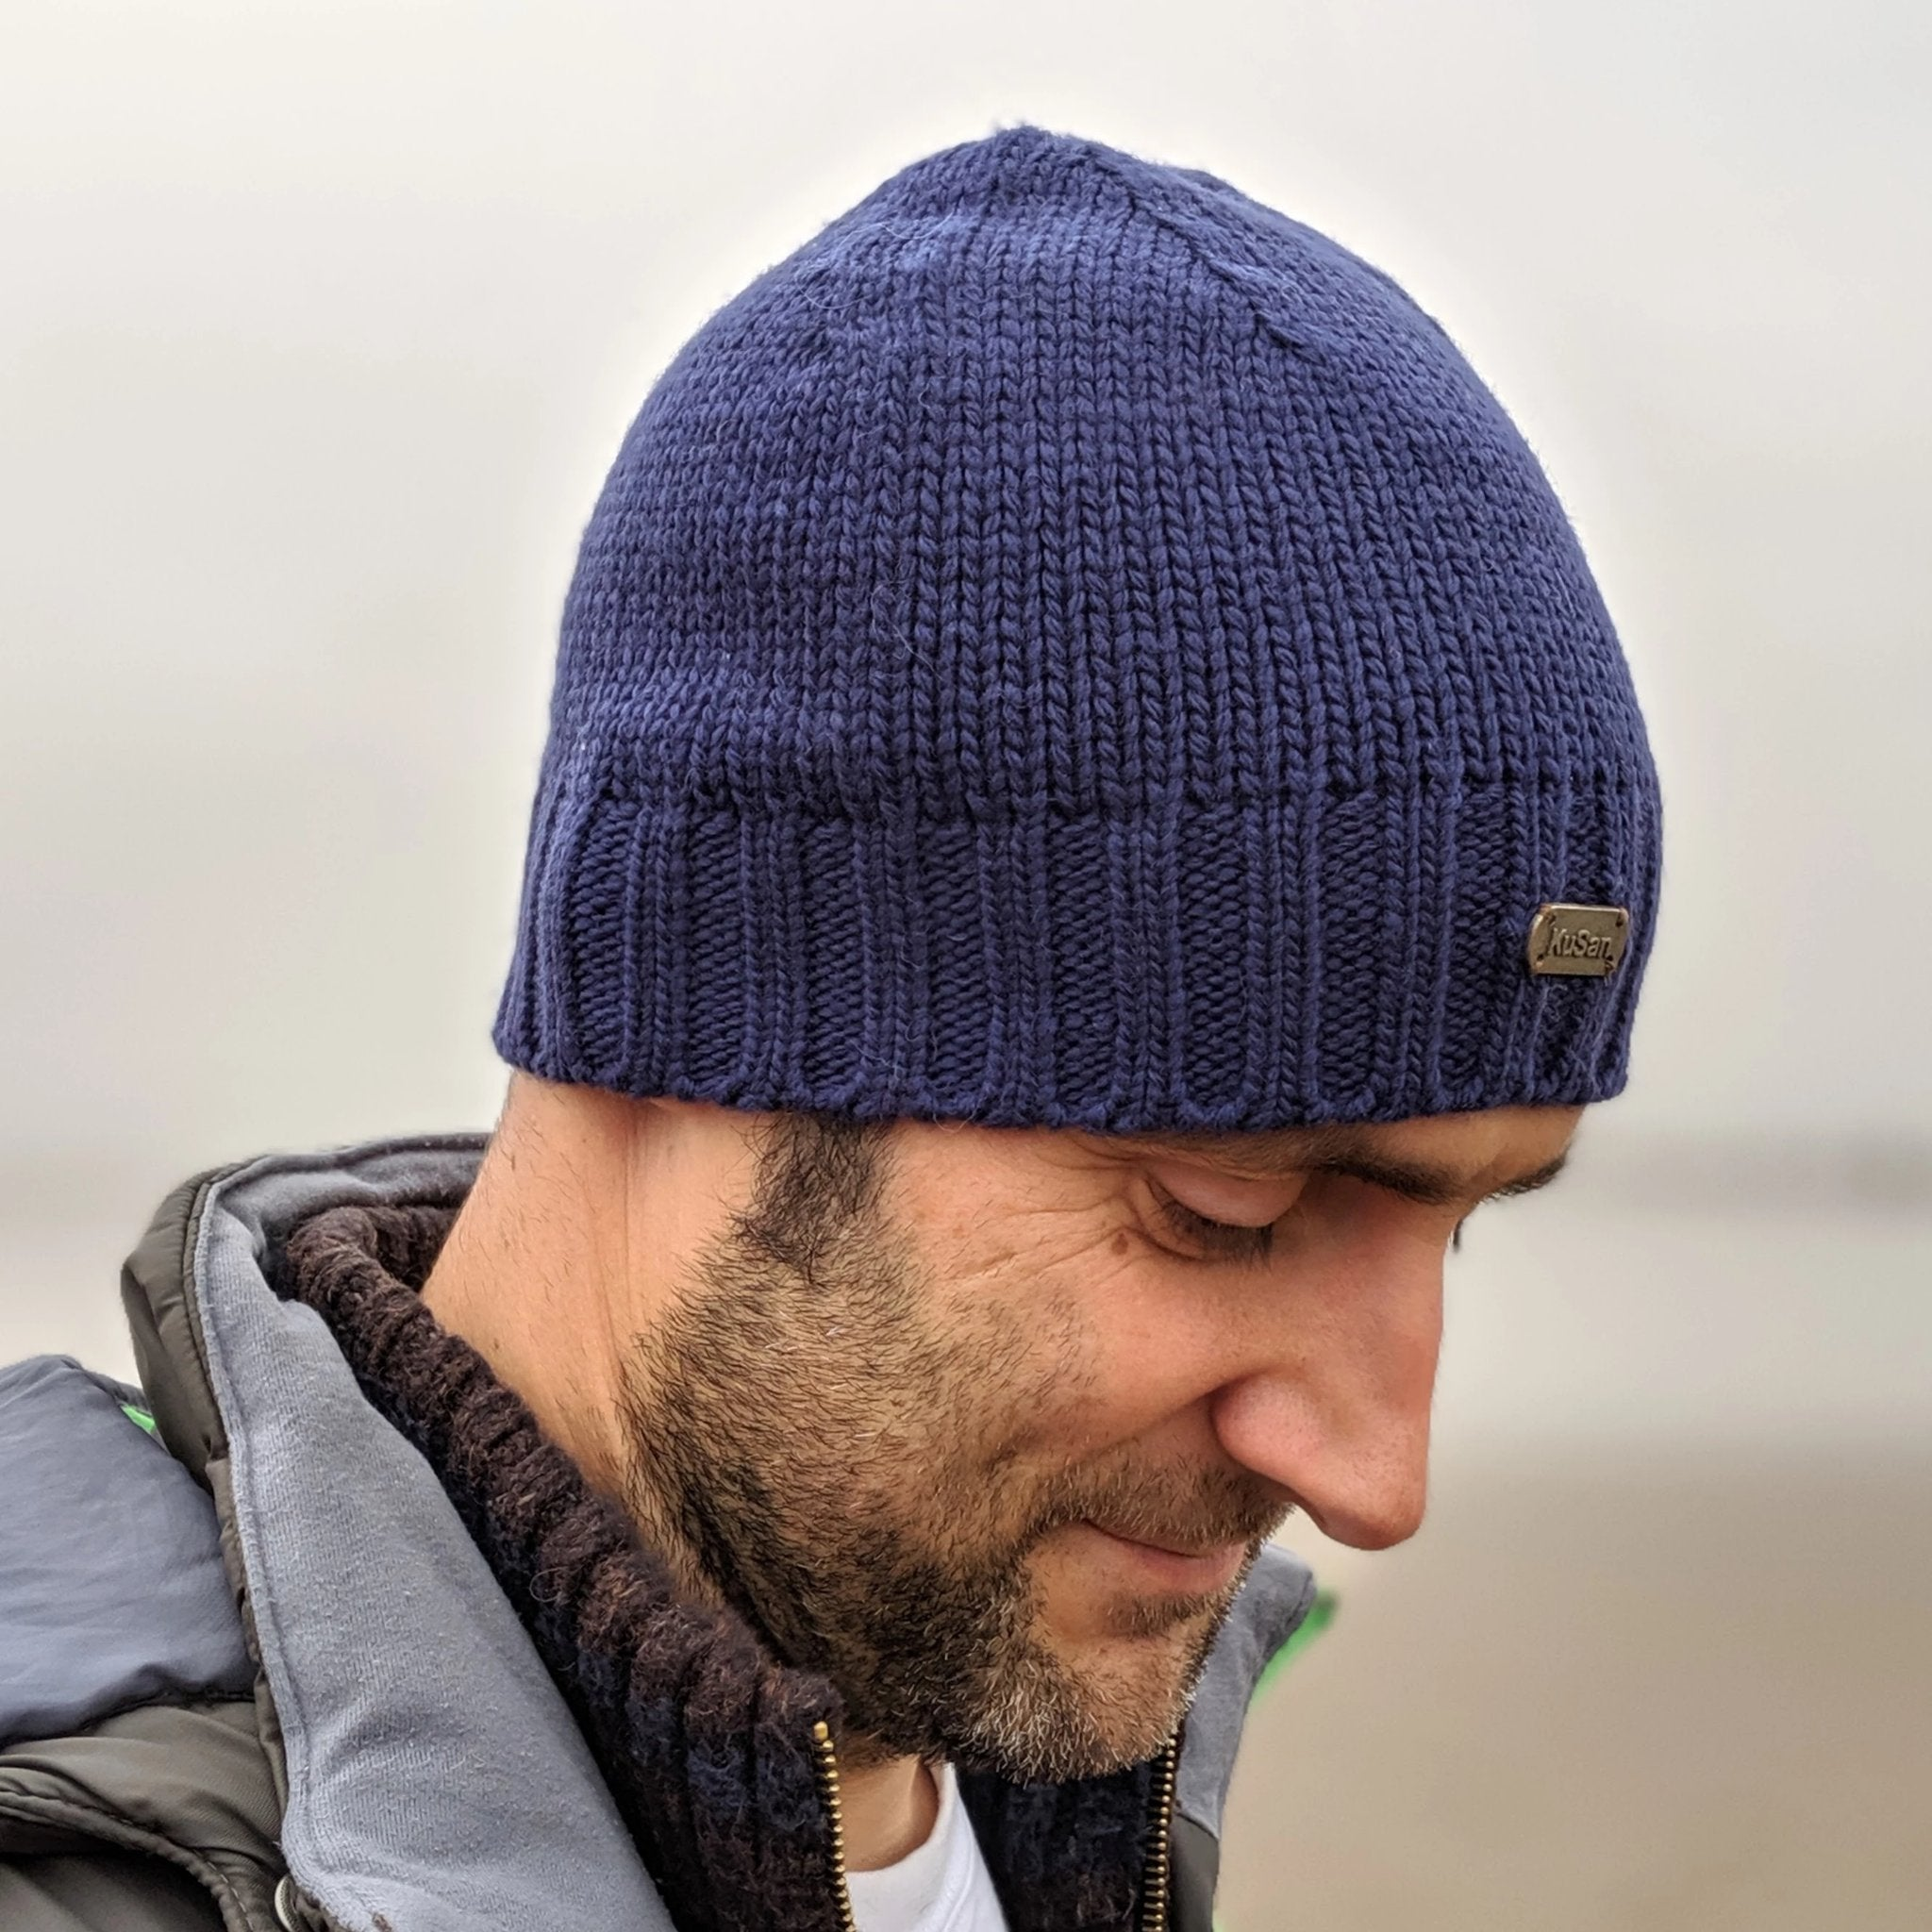 Man wearing blue merino wool beanie